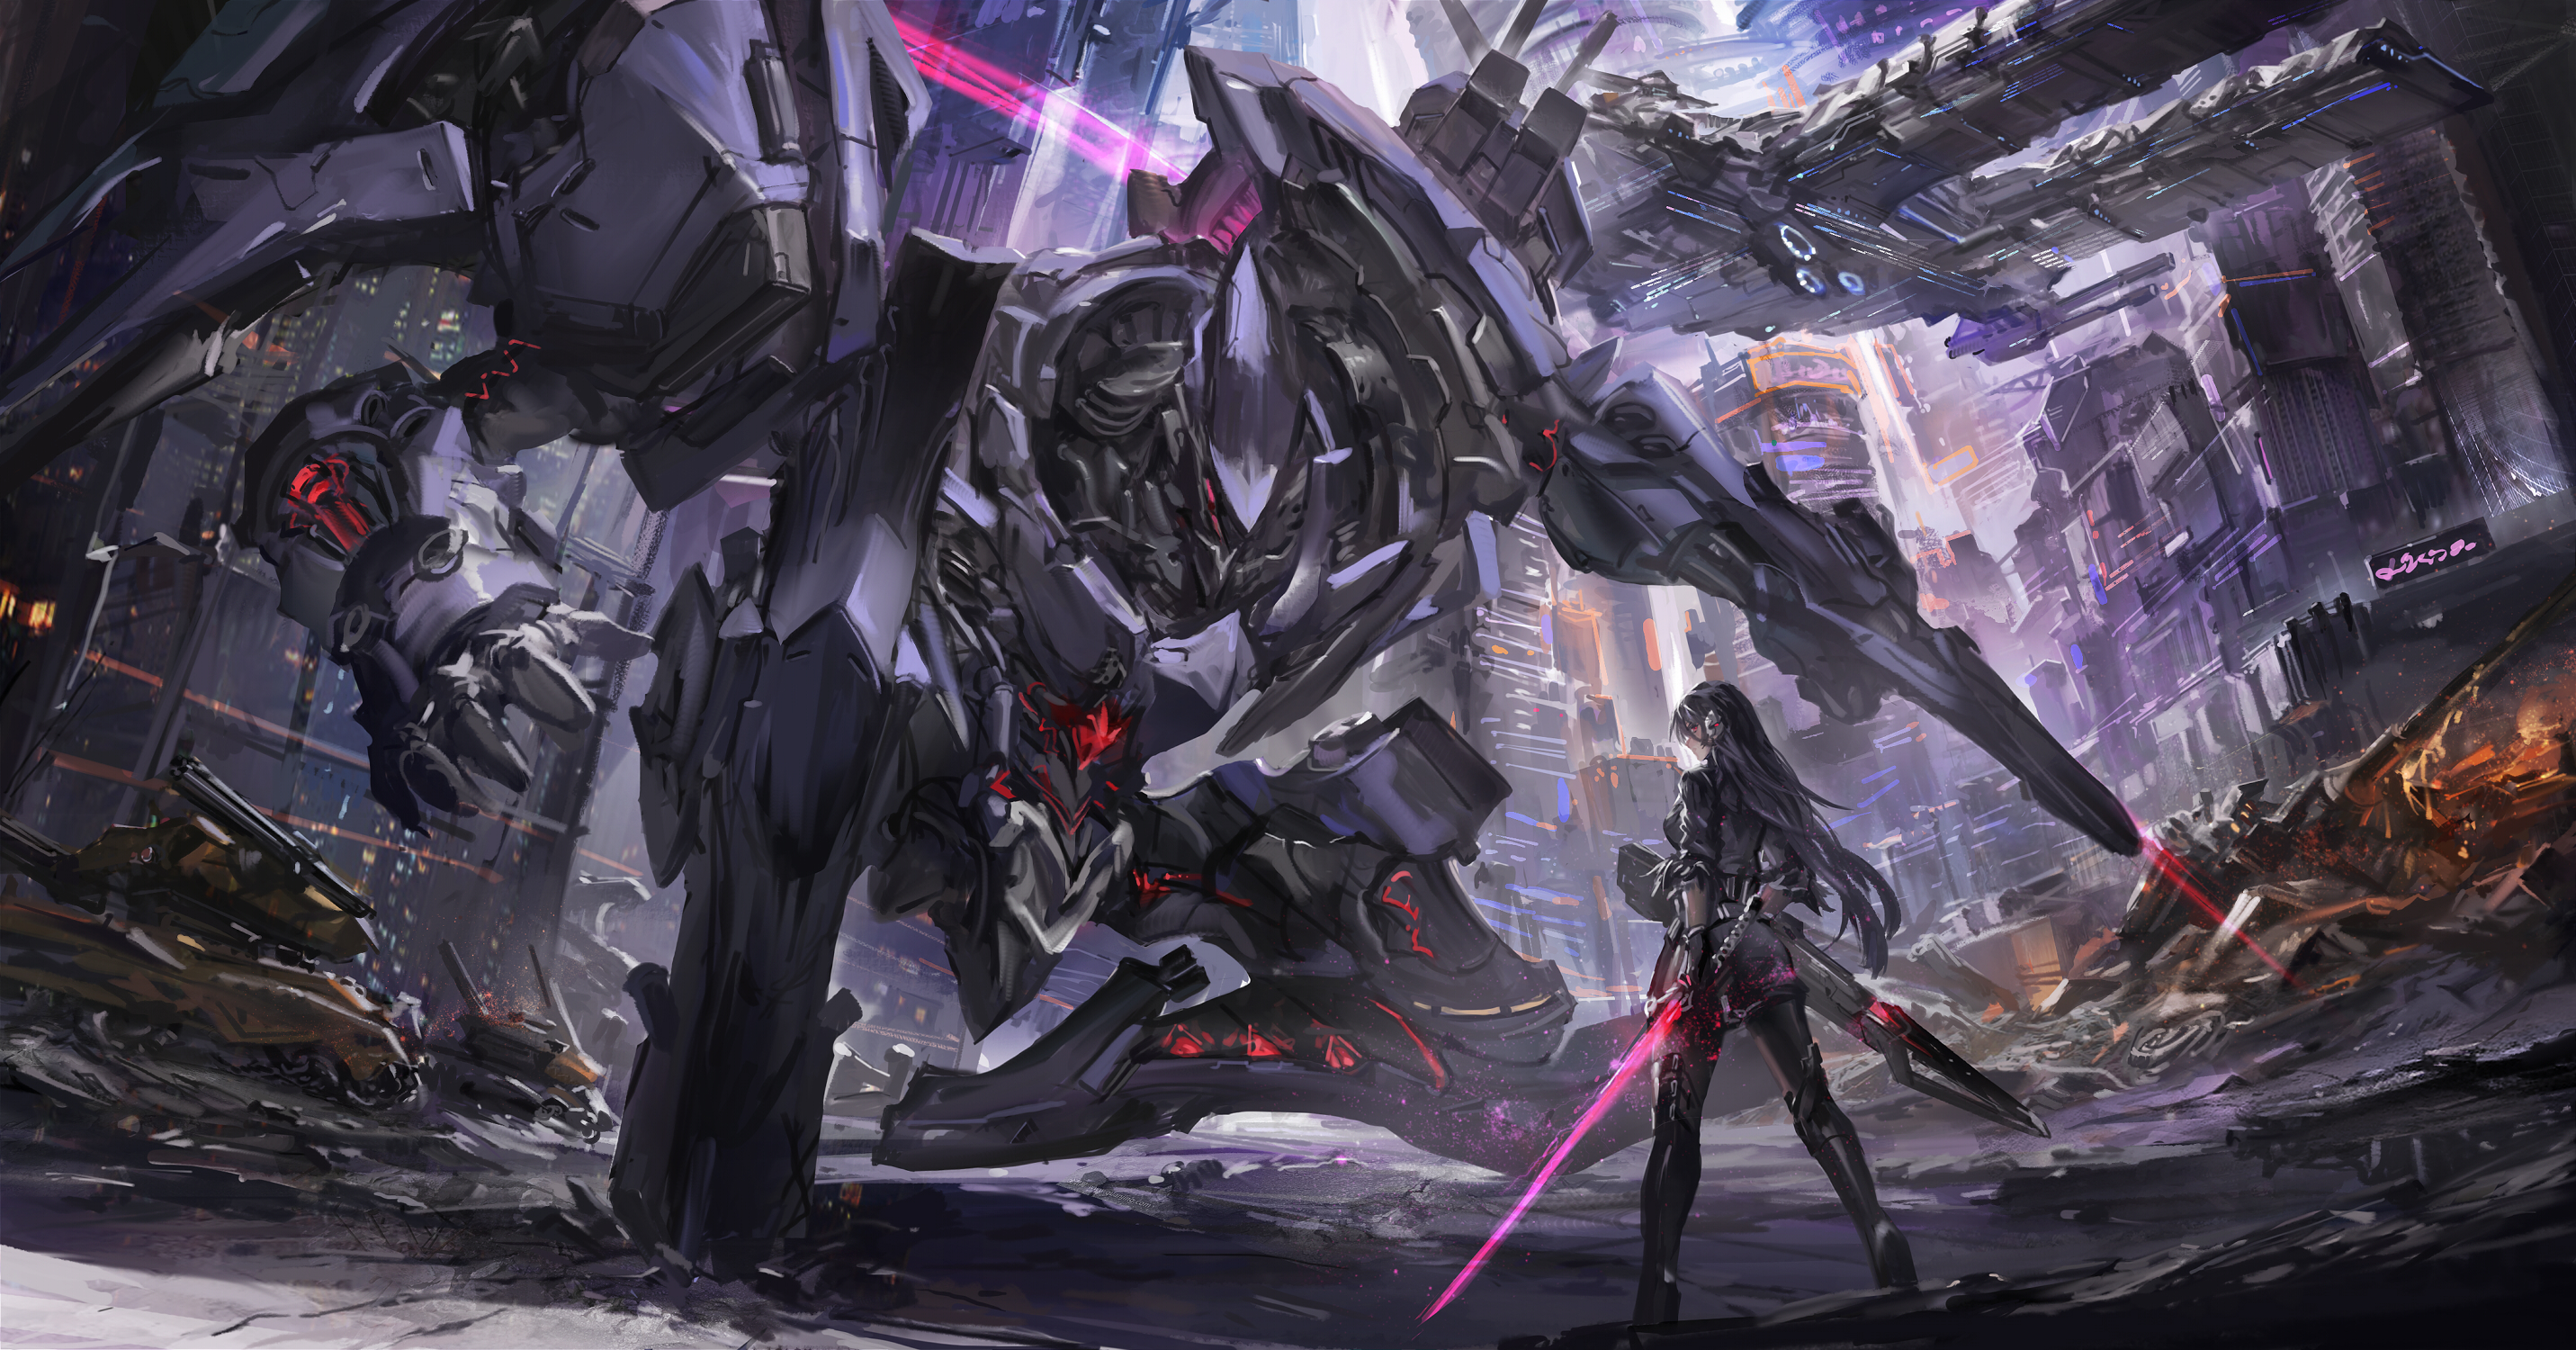 2560x1440 robot scifi anime war 1440p resolution hd 4k - Best war wallpapers hd ...